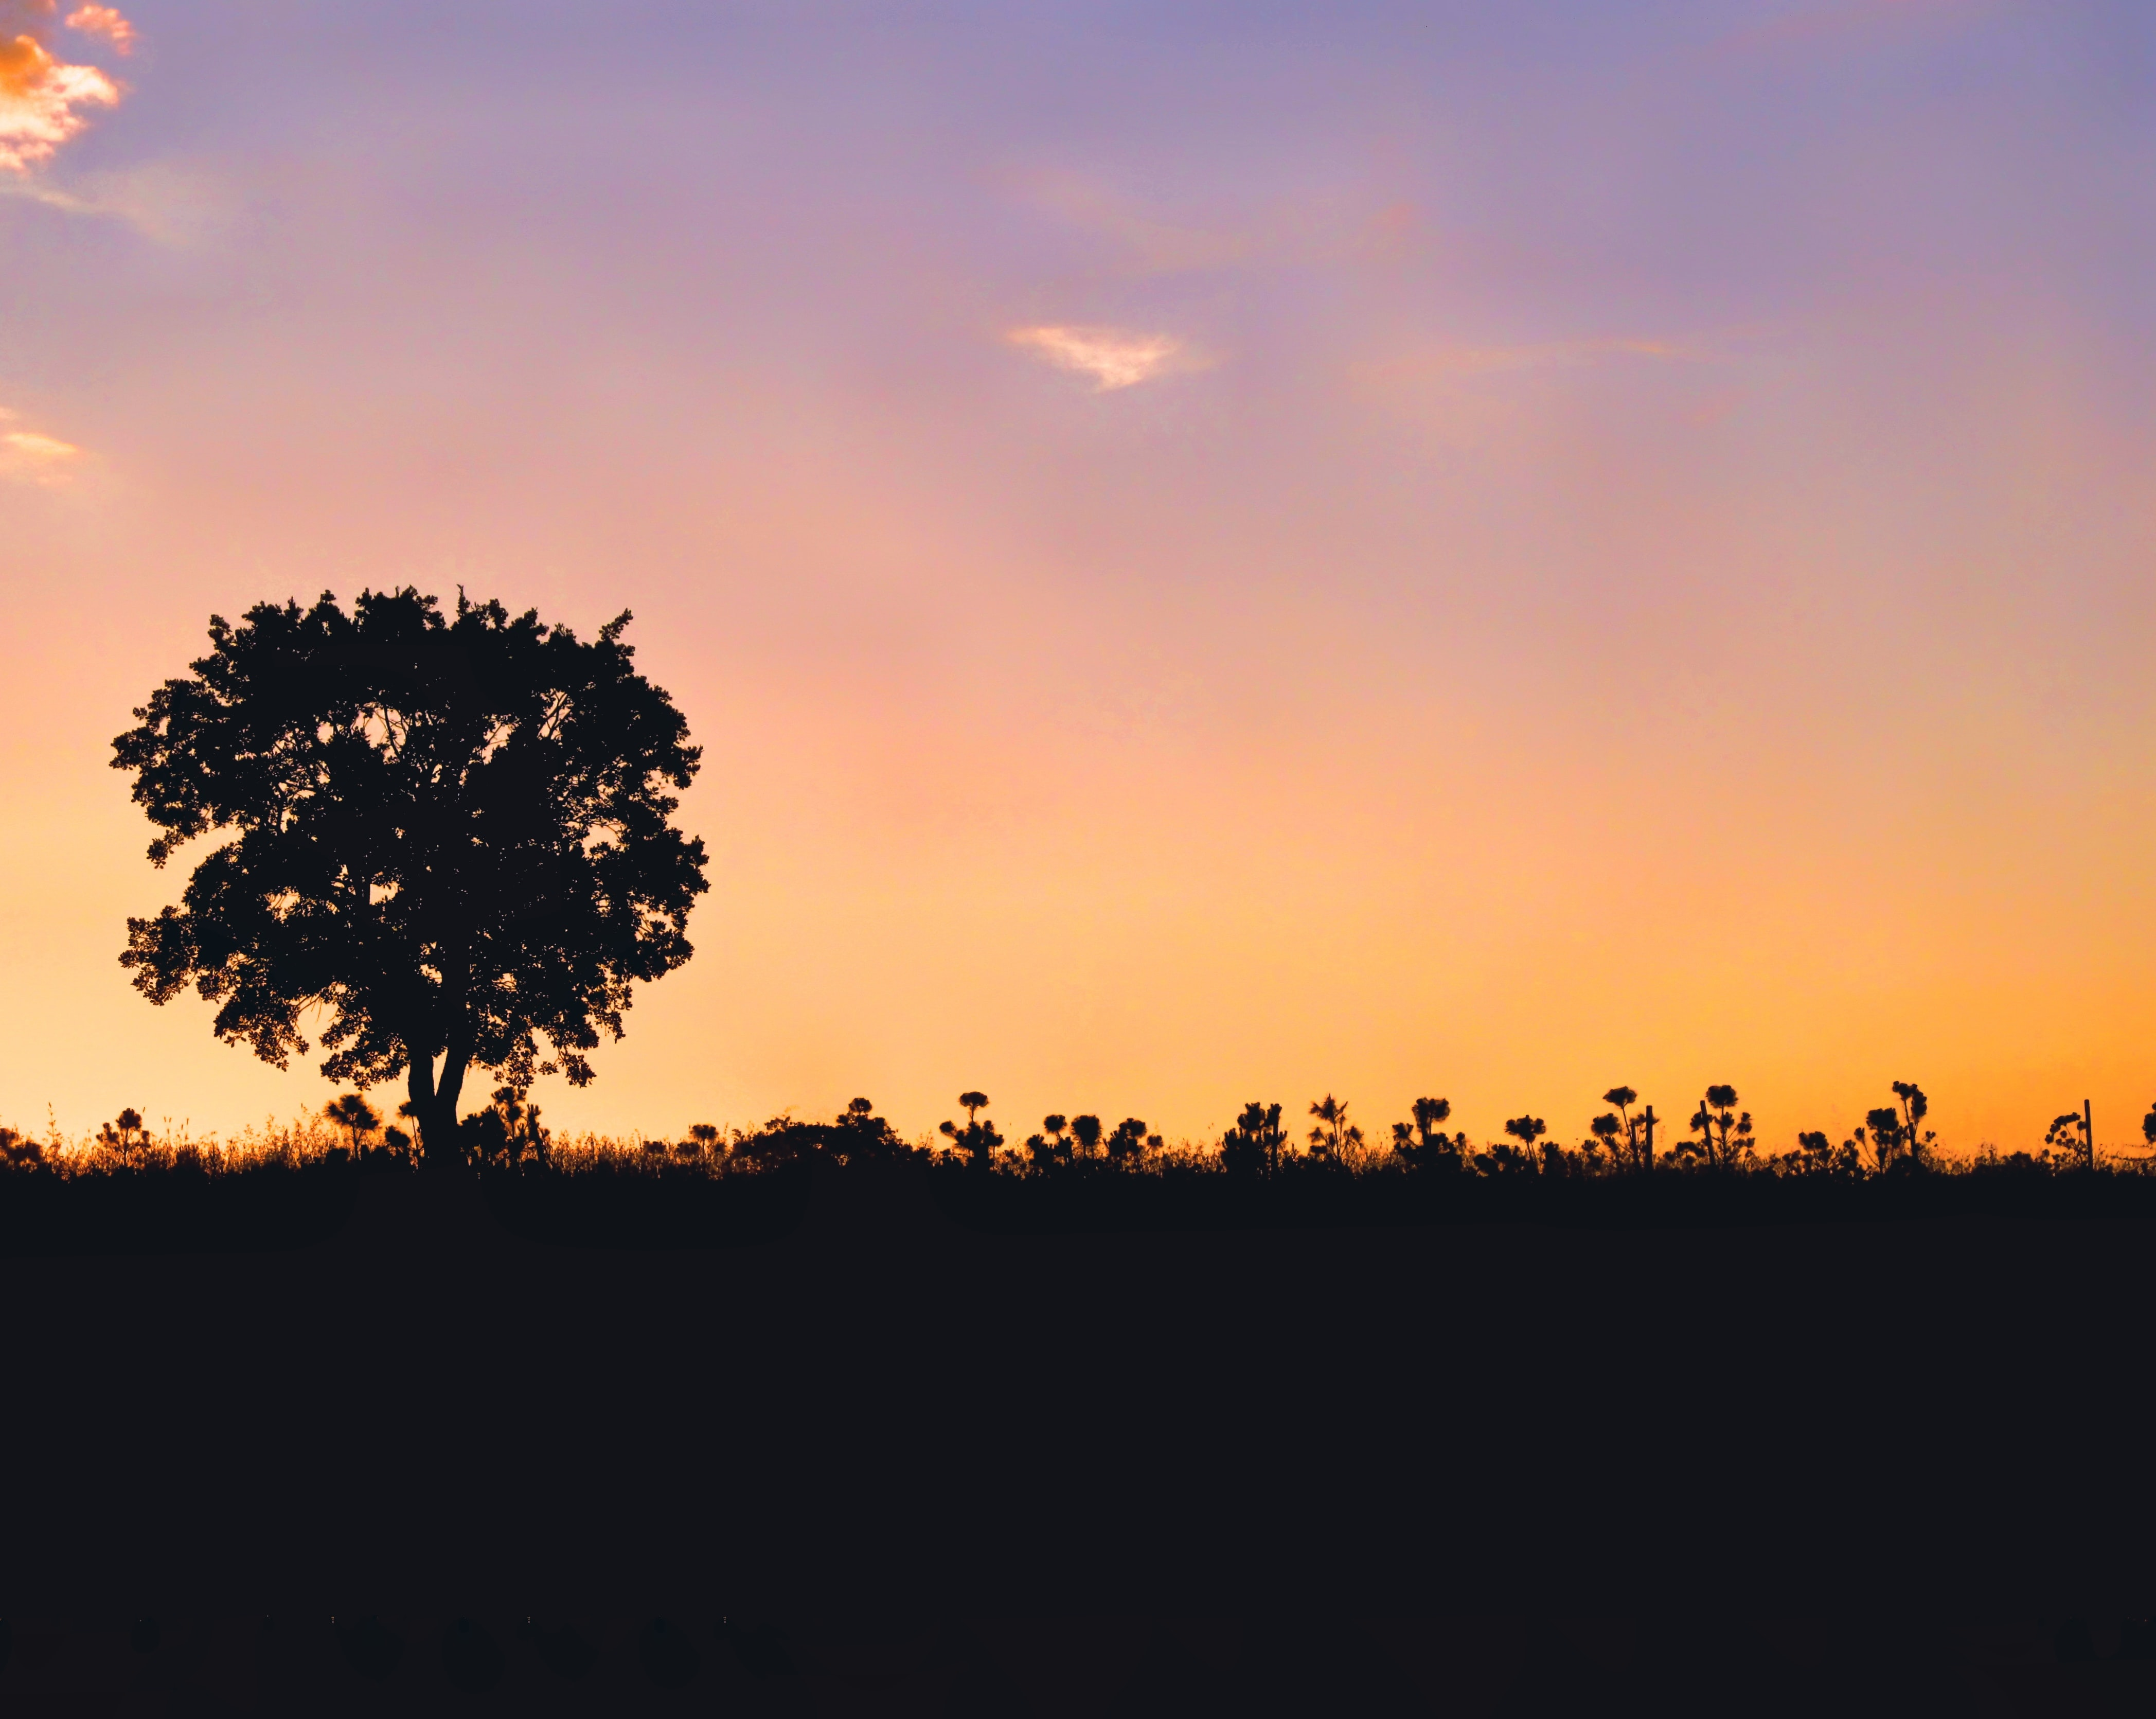 silhouette of tree and flowers during sunset